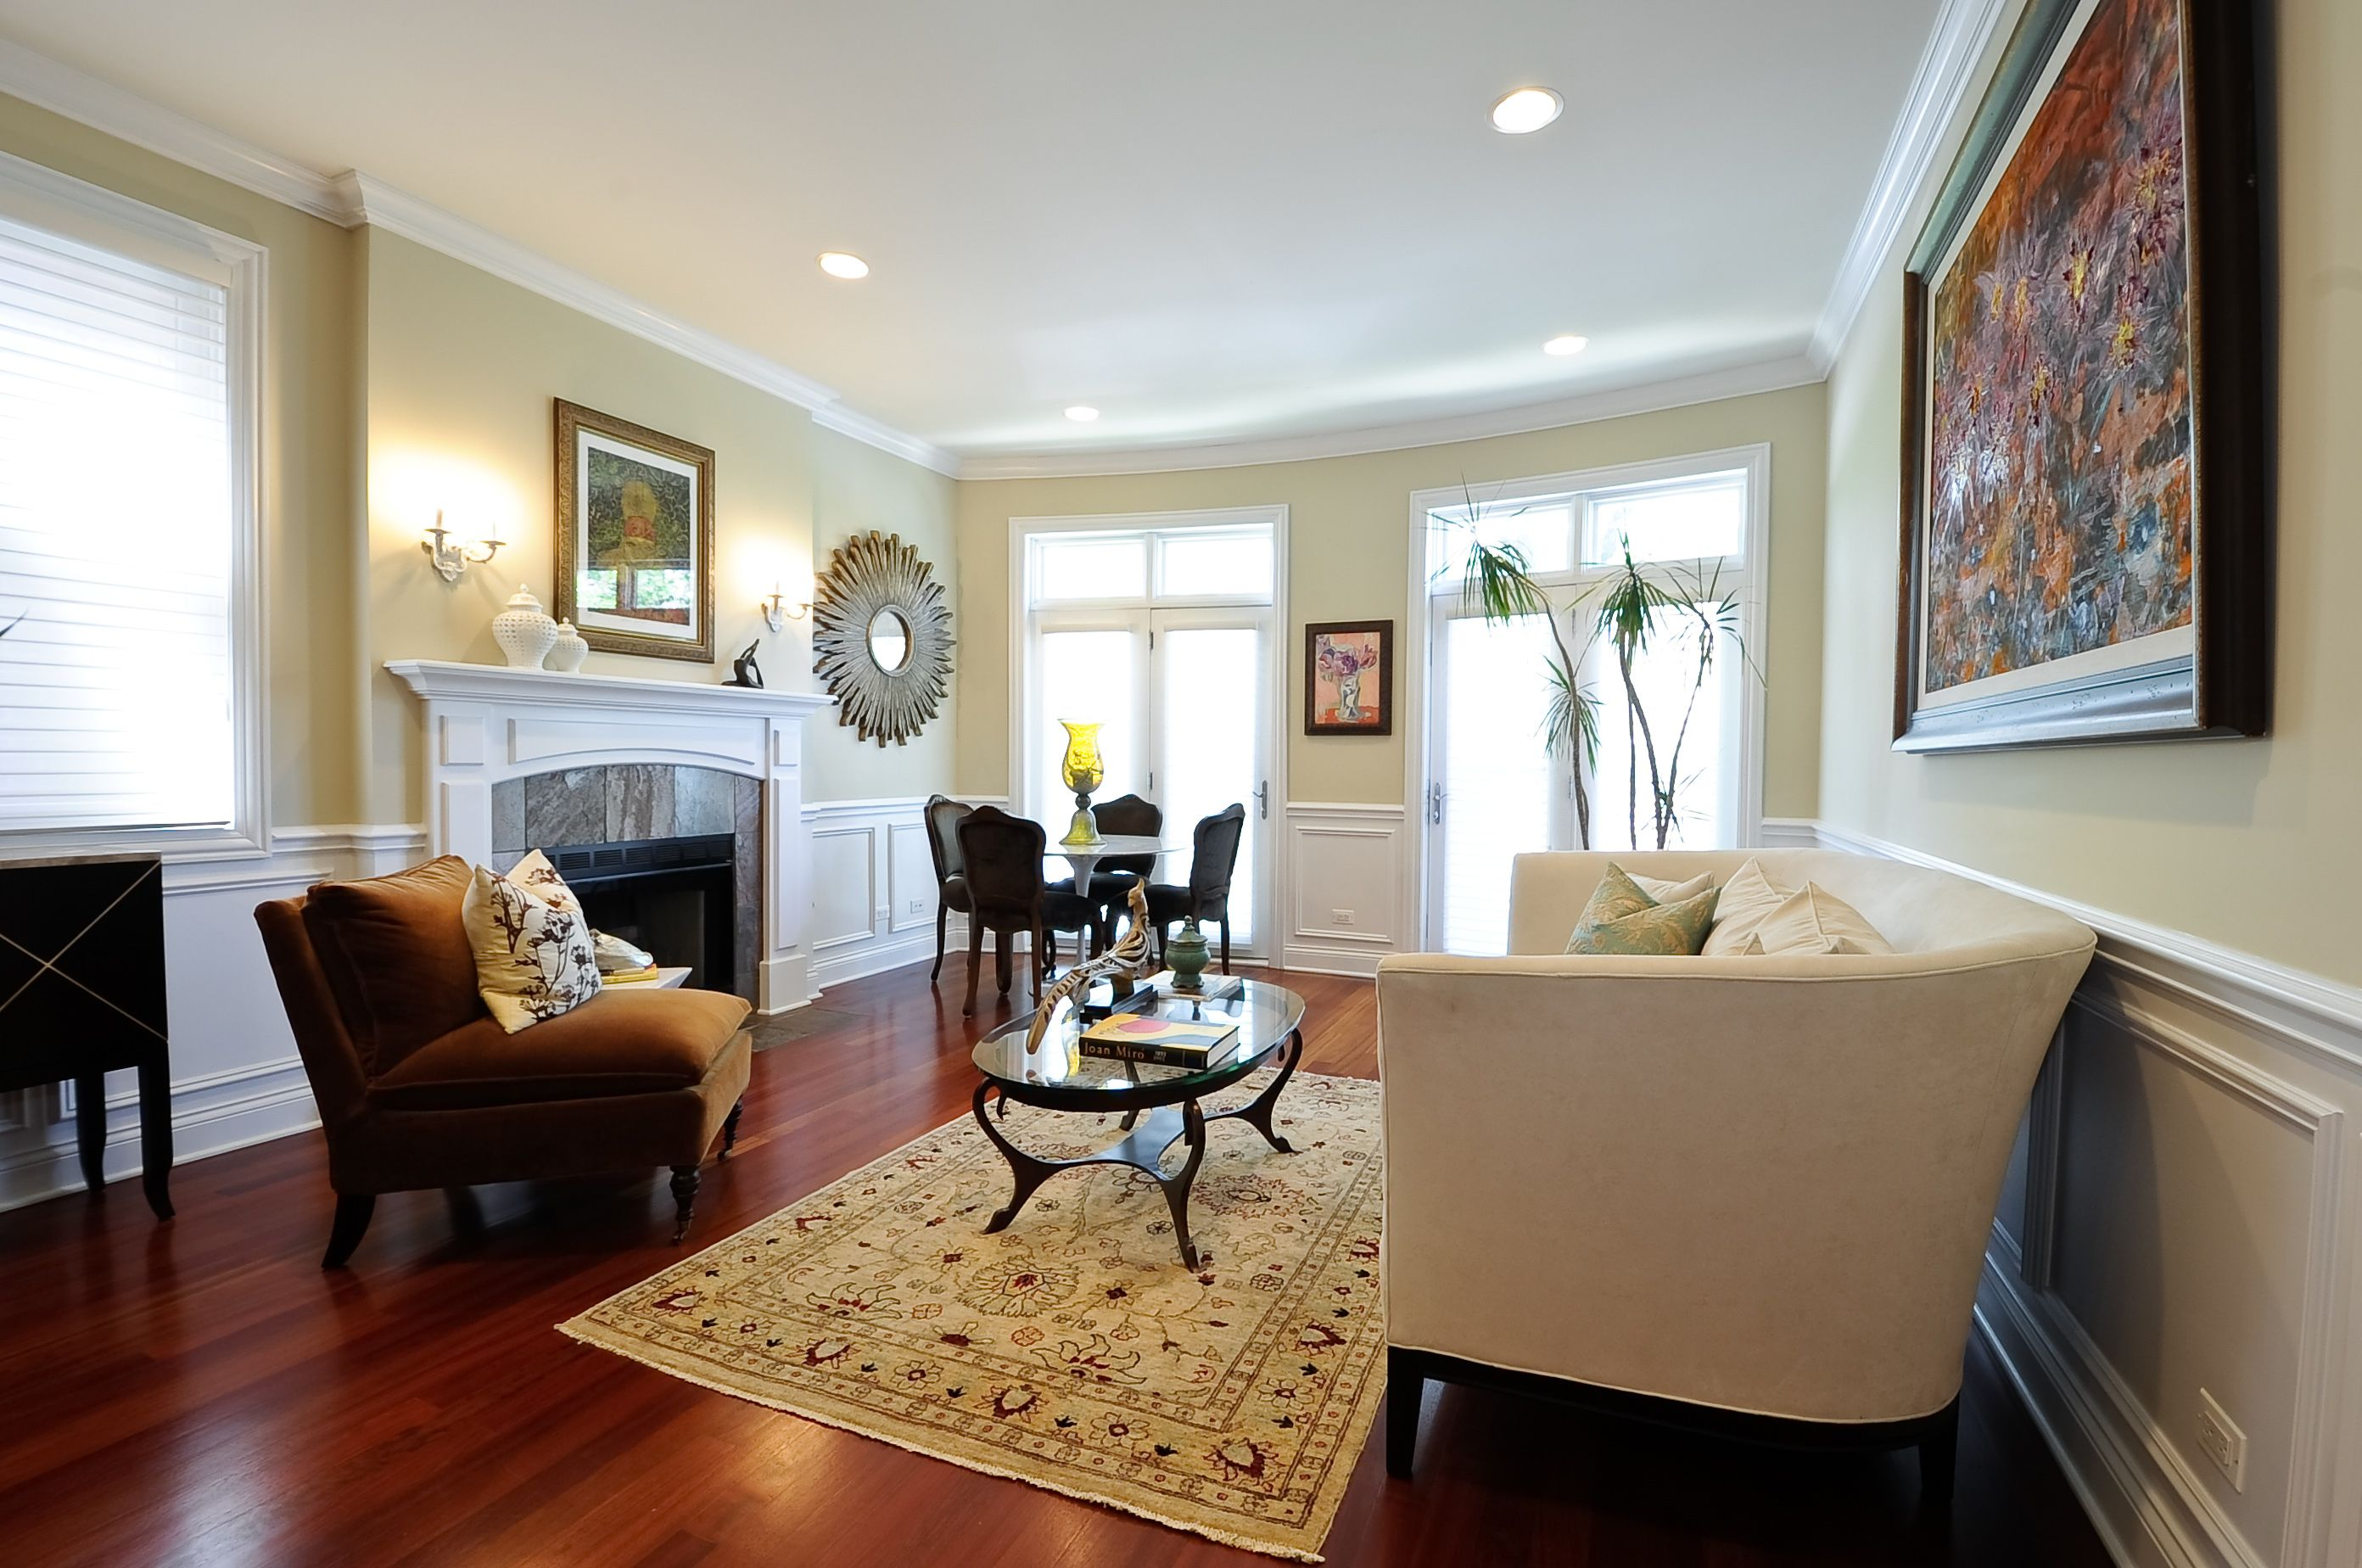 Wainscoting For Living Room Gorgeous Living Room With Wainscoting Favorite Images From Sold